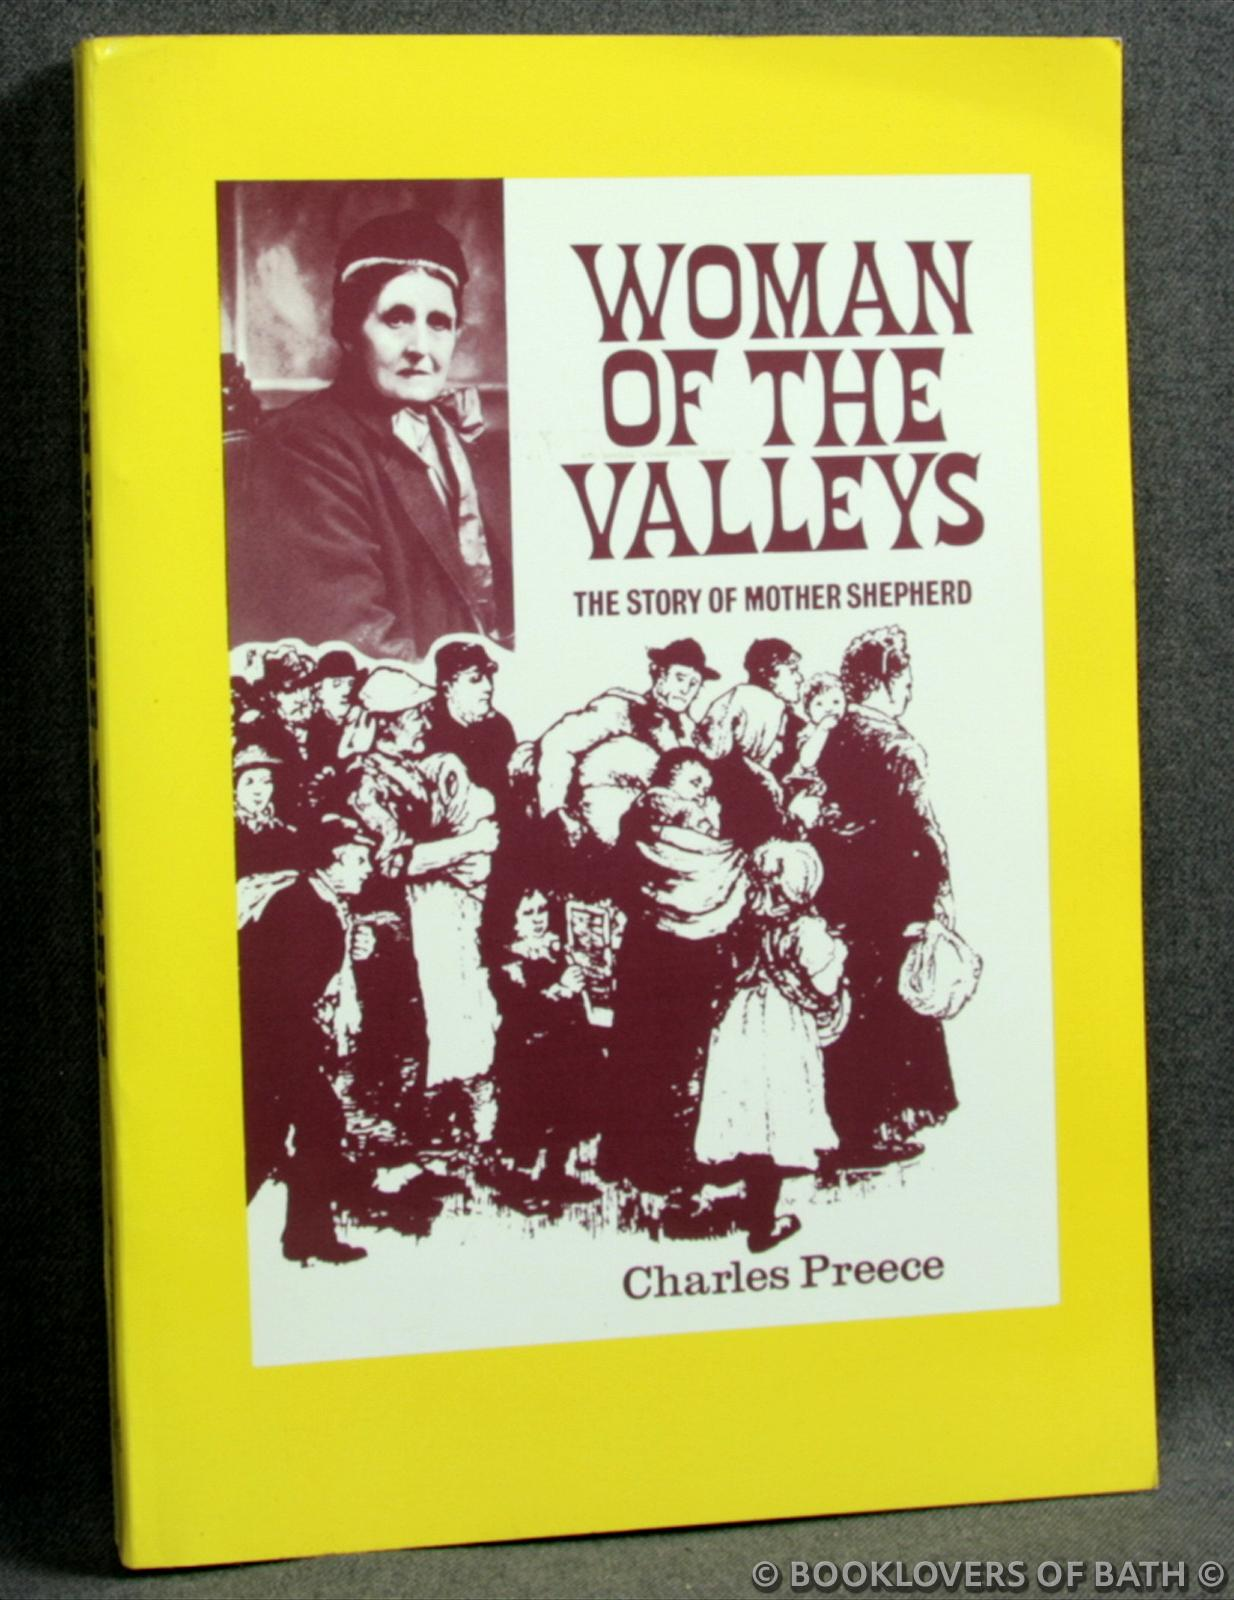 Woman of the Valleys: The Story of Mother Shepherd - Charles Preece